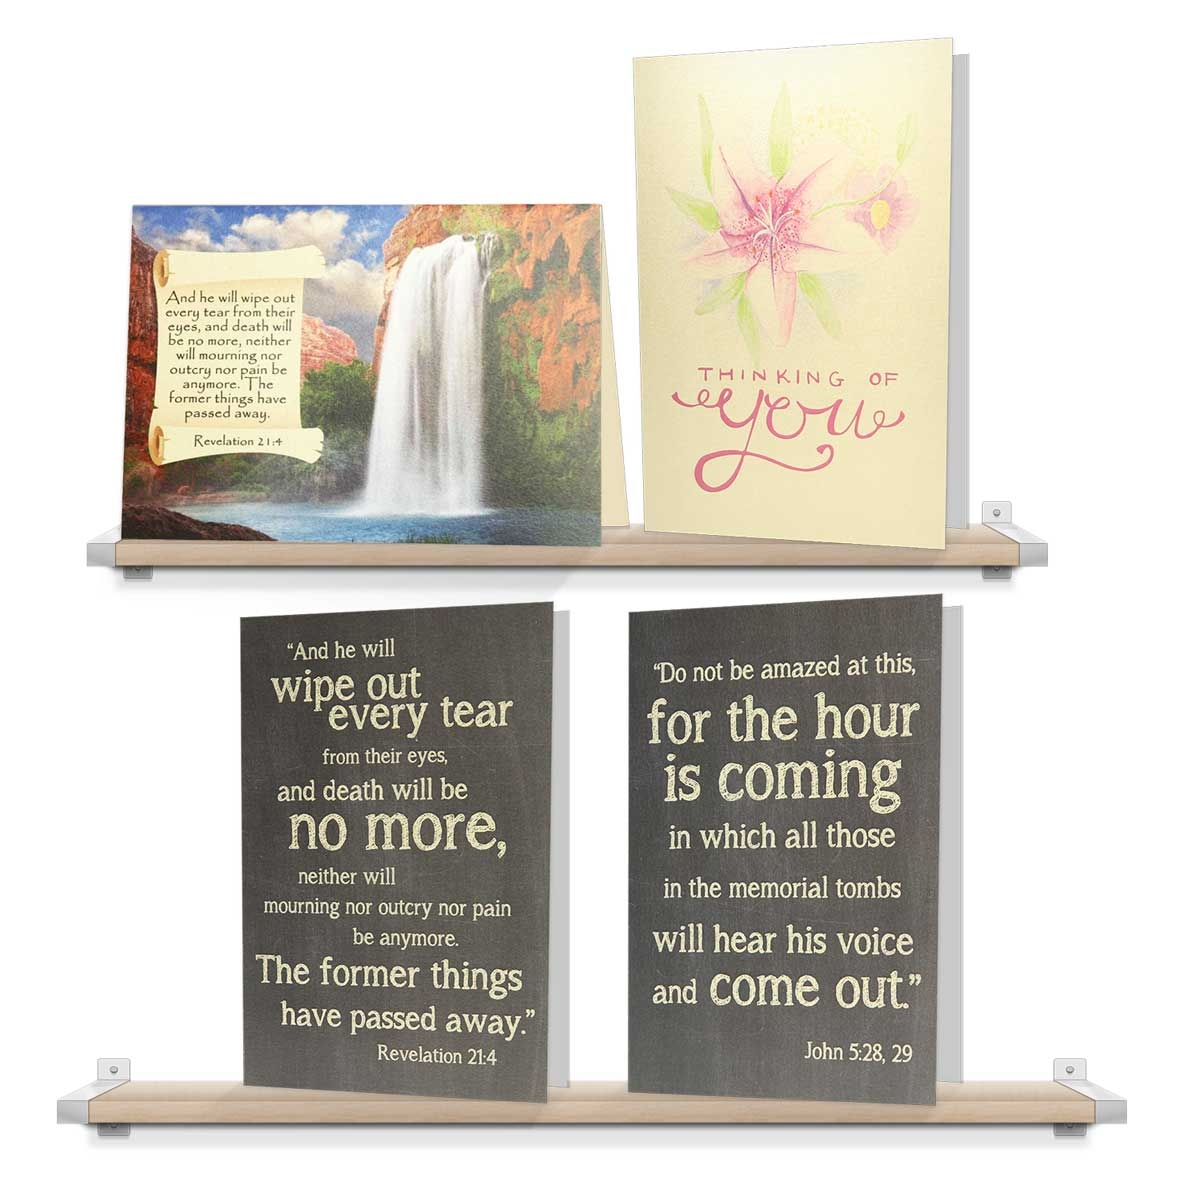 Condolence package jw sympathy greeting card set variety of sympathy greeting cards view larger photo email m4hsunfo